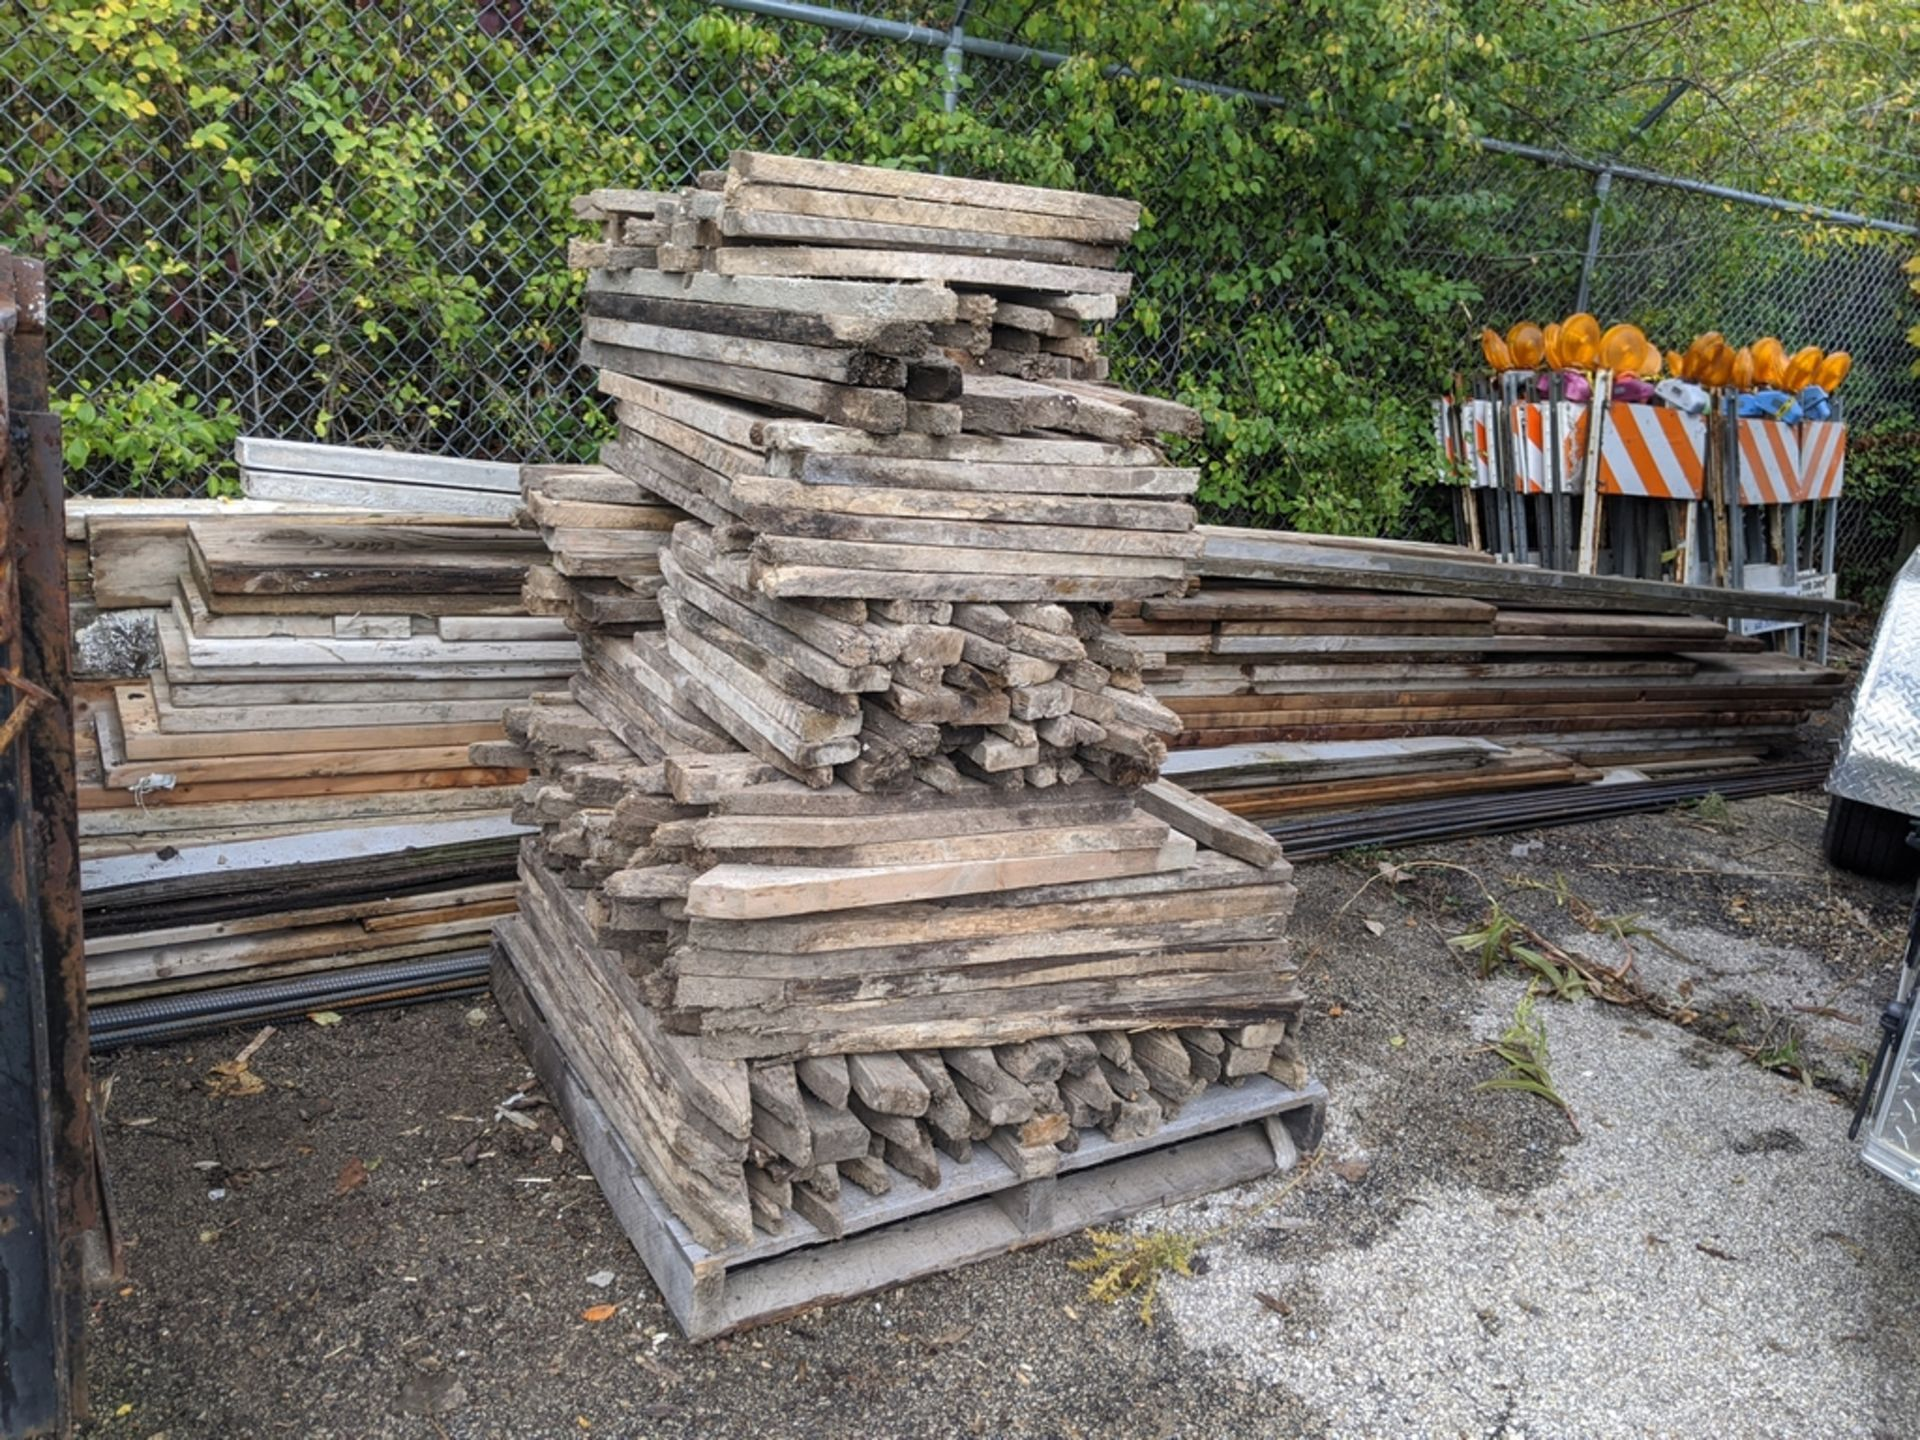 Lot 12 - LARGE QTY OF ASSORTED LUMBER & STAKES